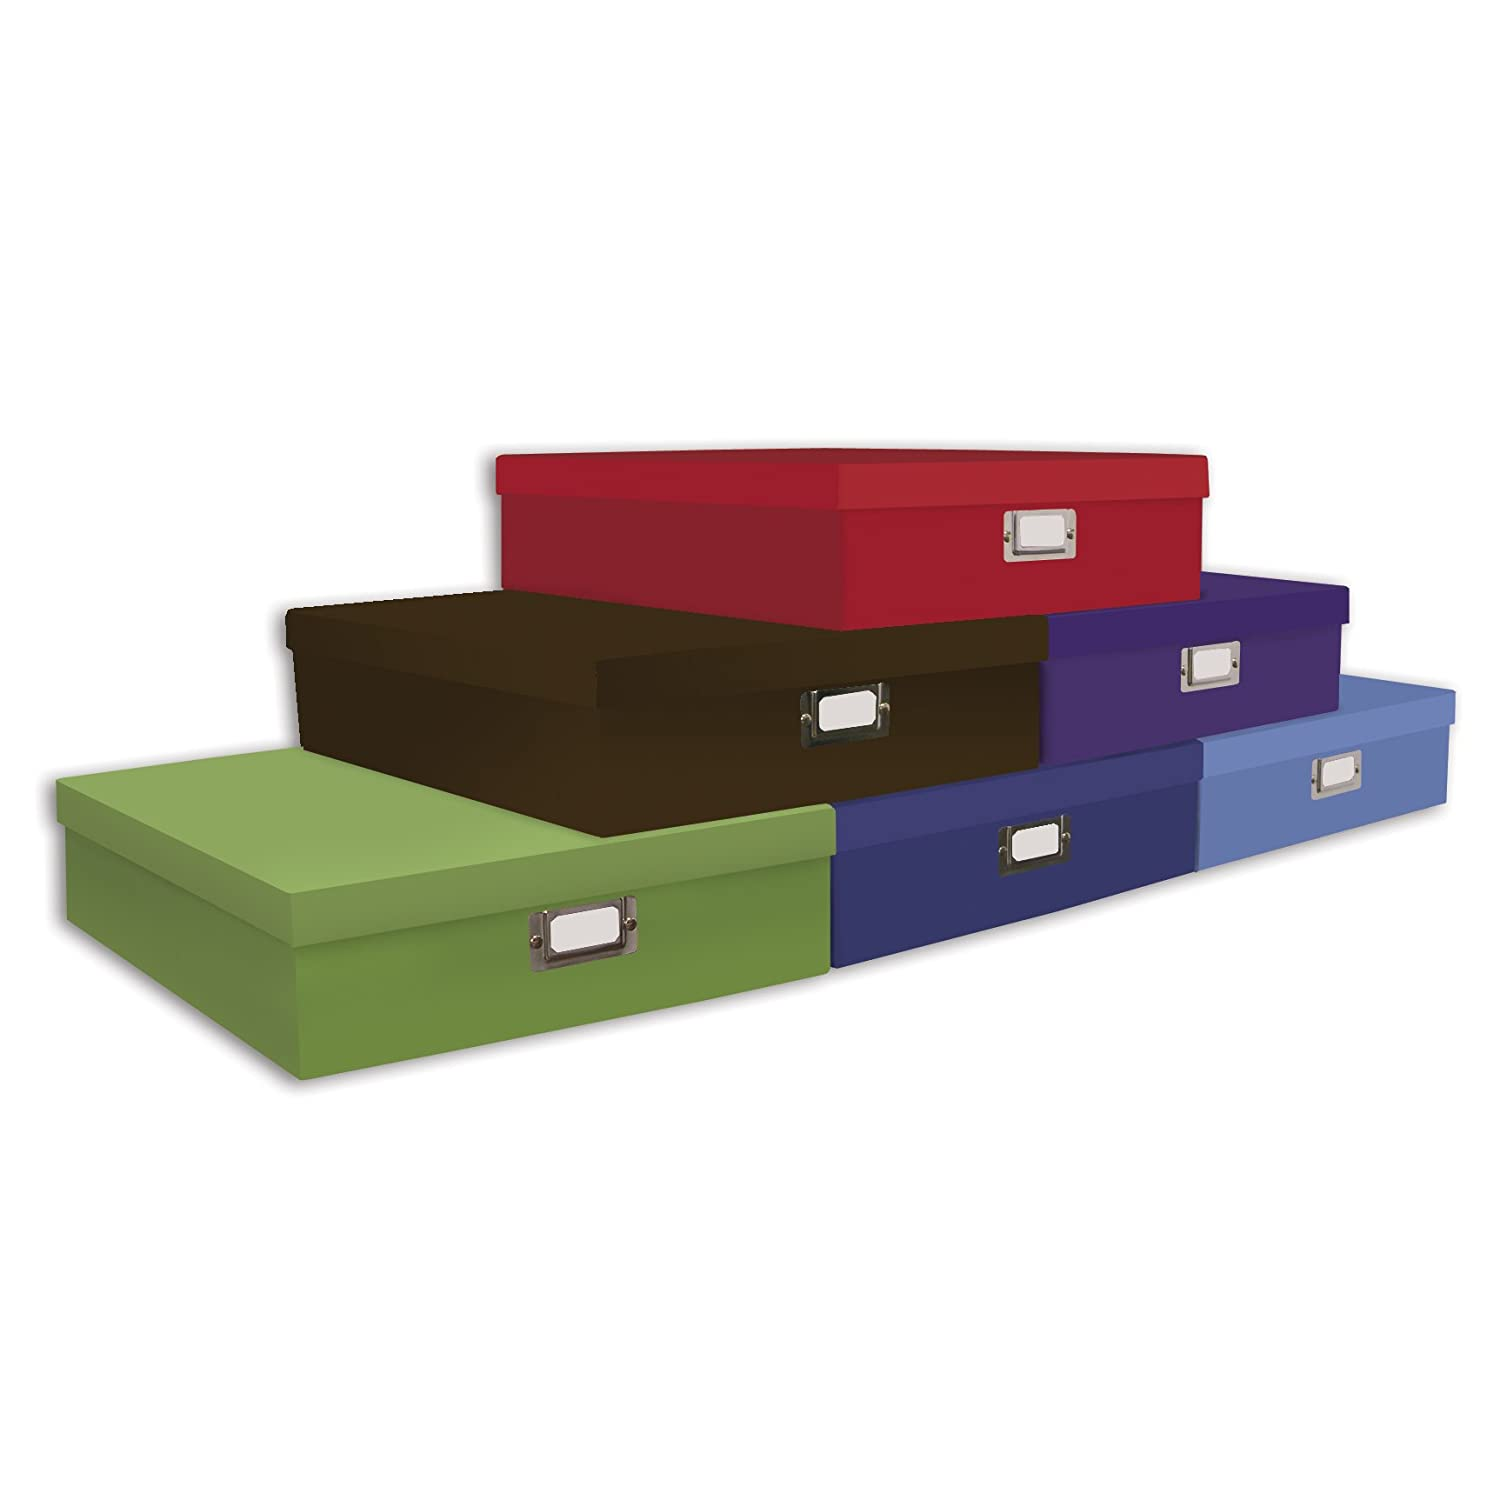 Pioneer 13-Inch by 15-Inch by 3-3/4-Inch Storage Box, Assorted Solids OB-12S